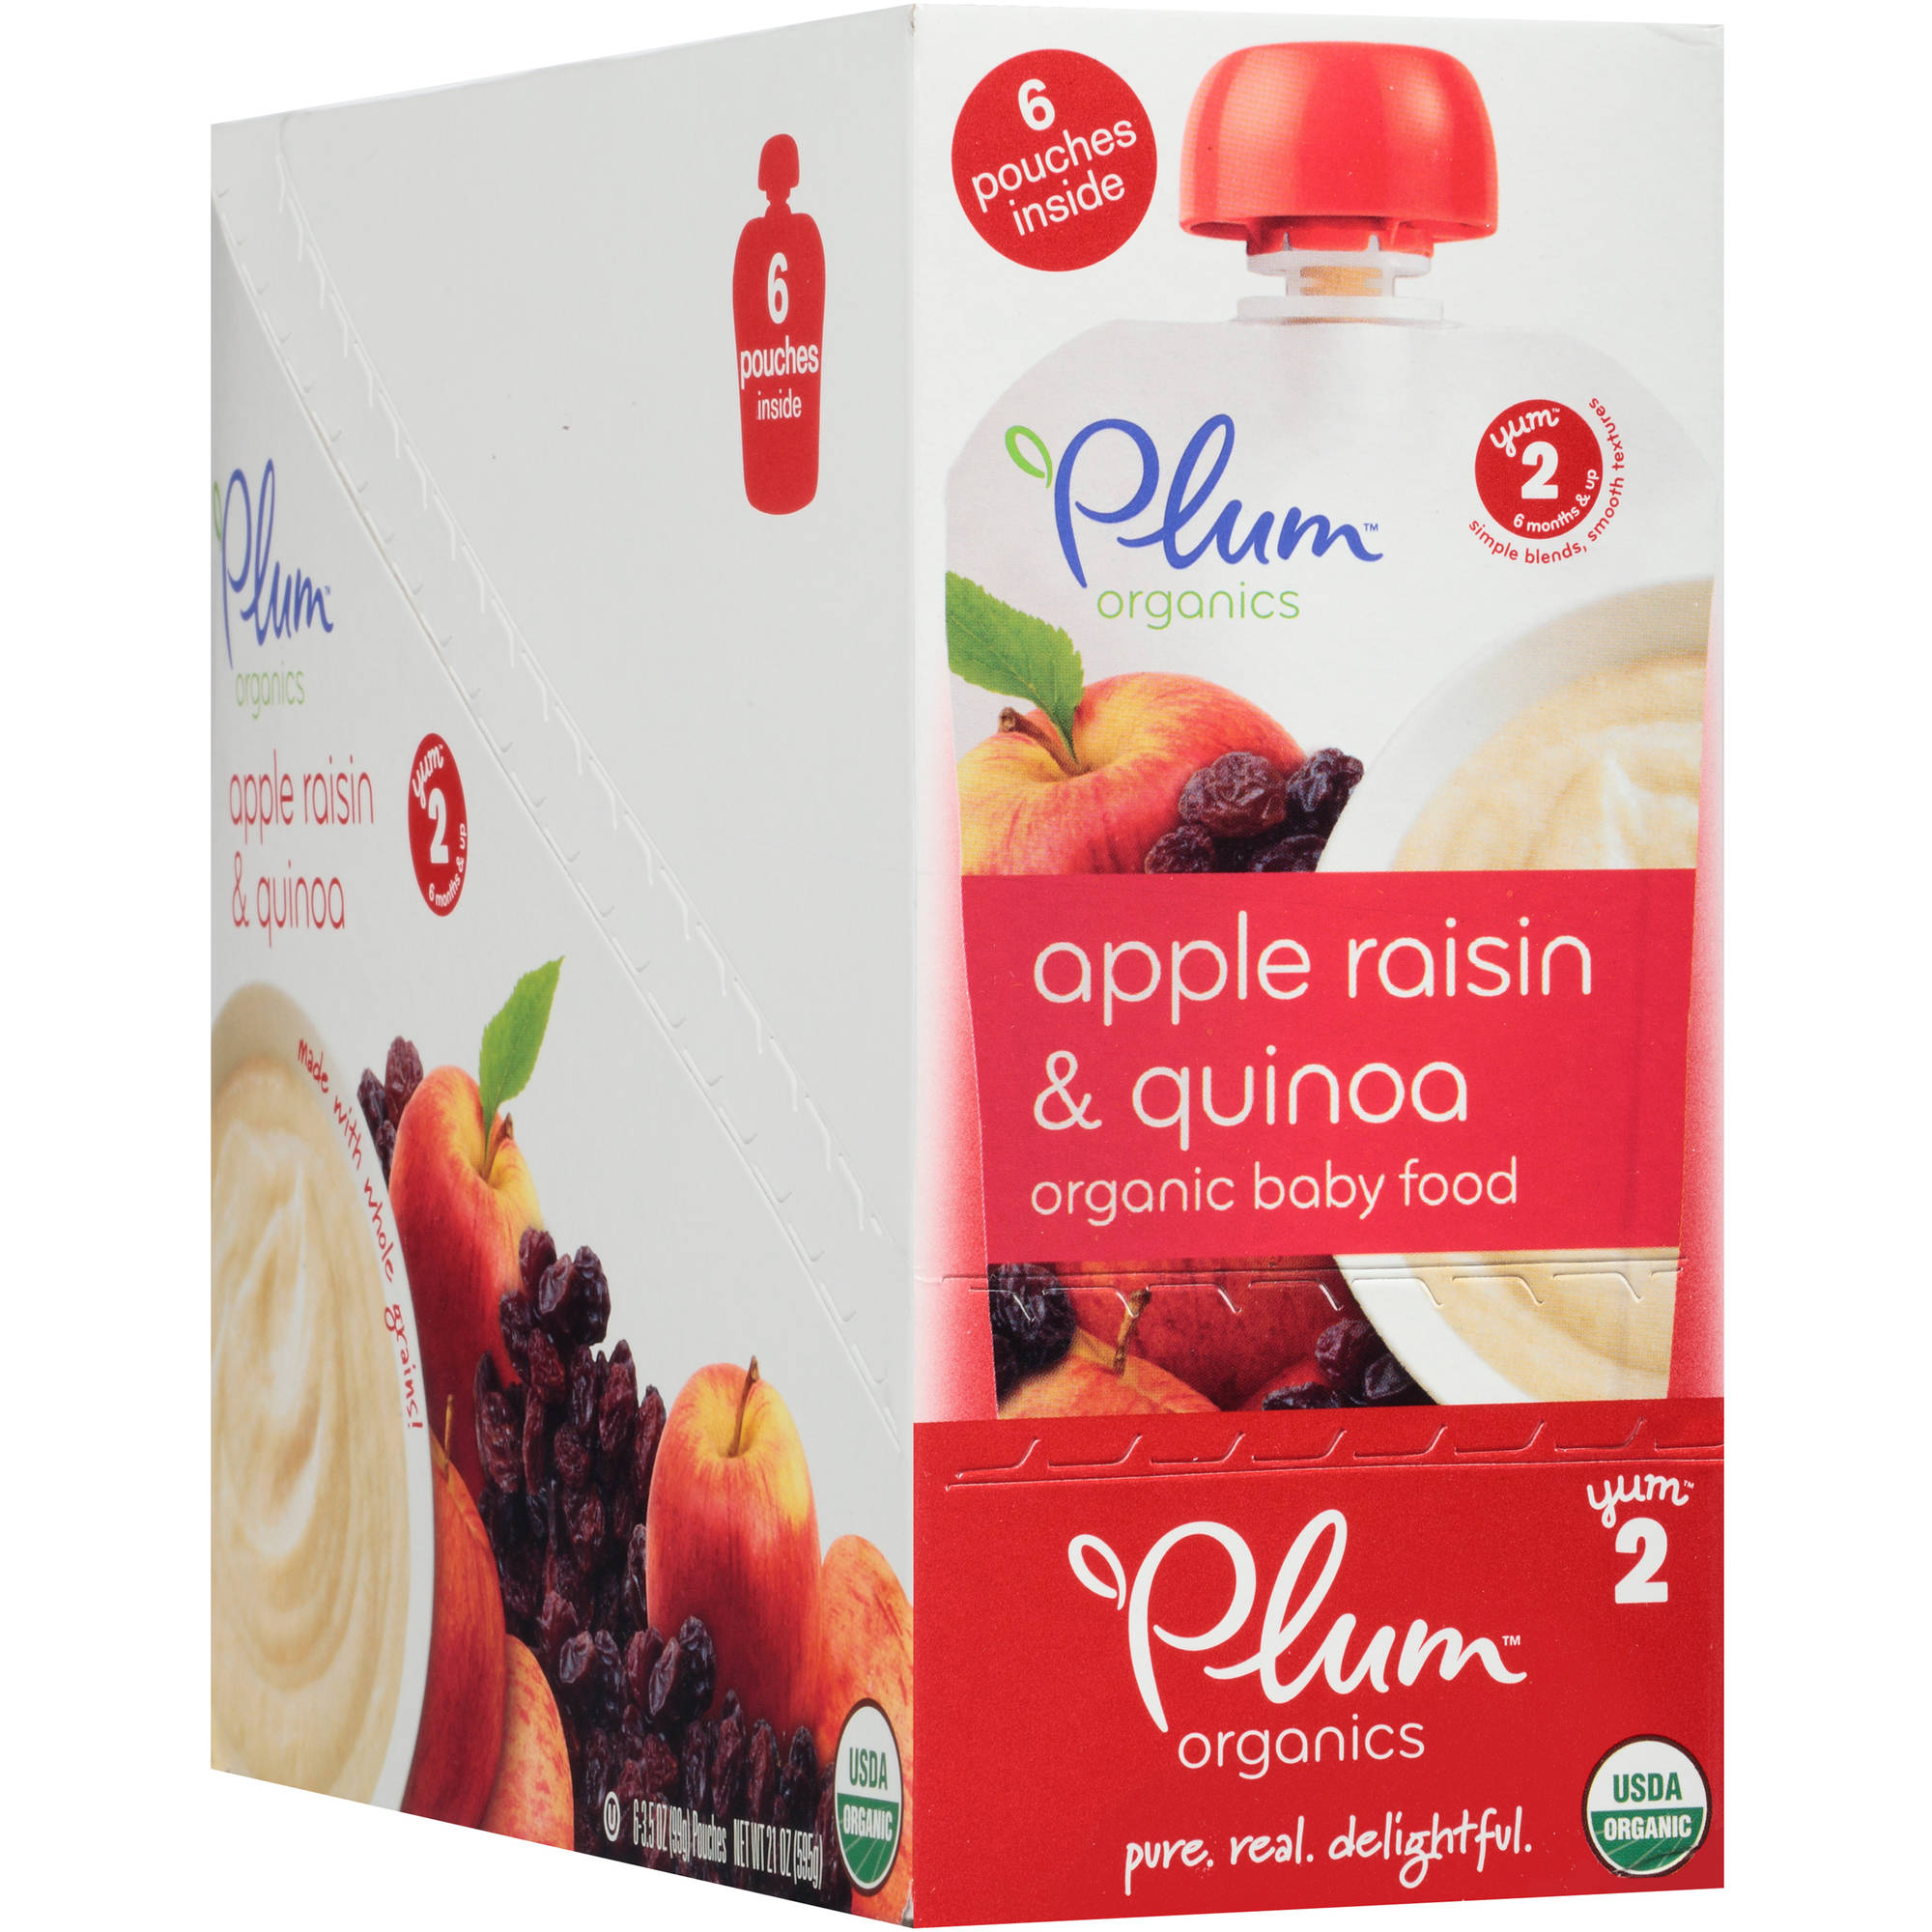 Plum Organics Stage 2 Apple, Raisin & Quinoa Organic Baby Food, 3.5 oz, 6 count by Plum Organics